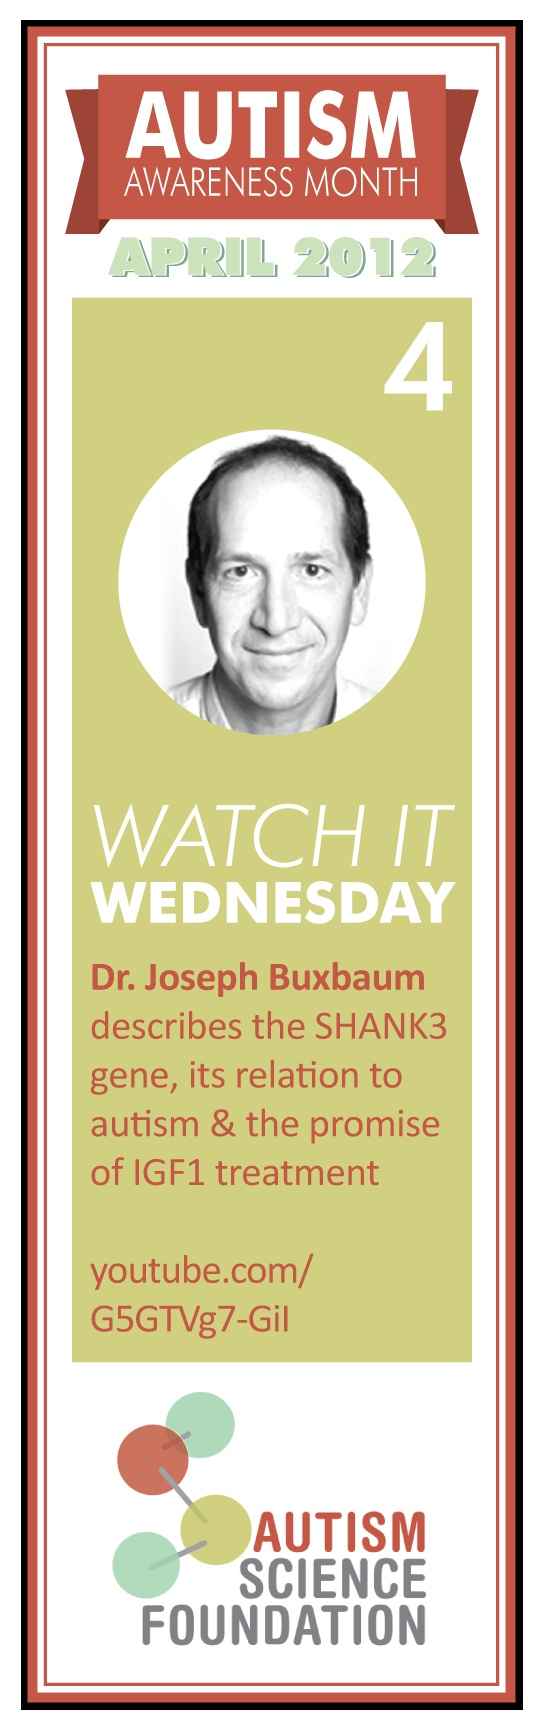 It's our first Watch It Wednesday - Take action today by watching this YouTube video of Dr. Joseph Buxbaum describe the SHANK3 gene, its relation to autism & the promise of IGF1 treatment    #autism #science #autismawarenessmonth: Autism Awareness, Autism Science, Autism Spectrum, Autism Stuff, Awareness Months, Books Autismawarenessmonth, Science Autismawarenessmonth, Months 2012, Months 2013